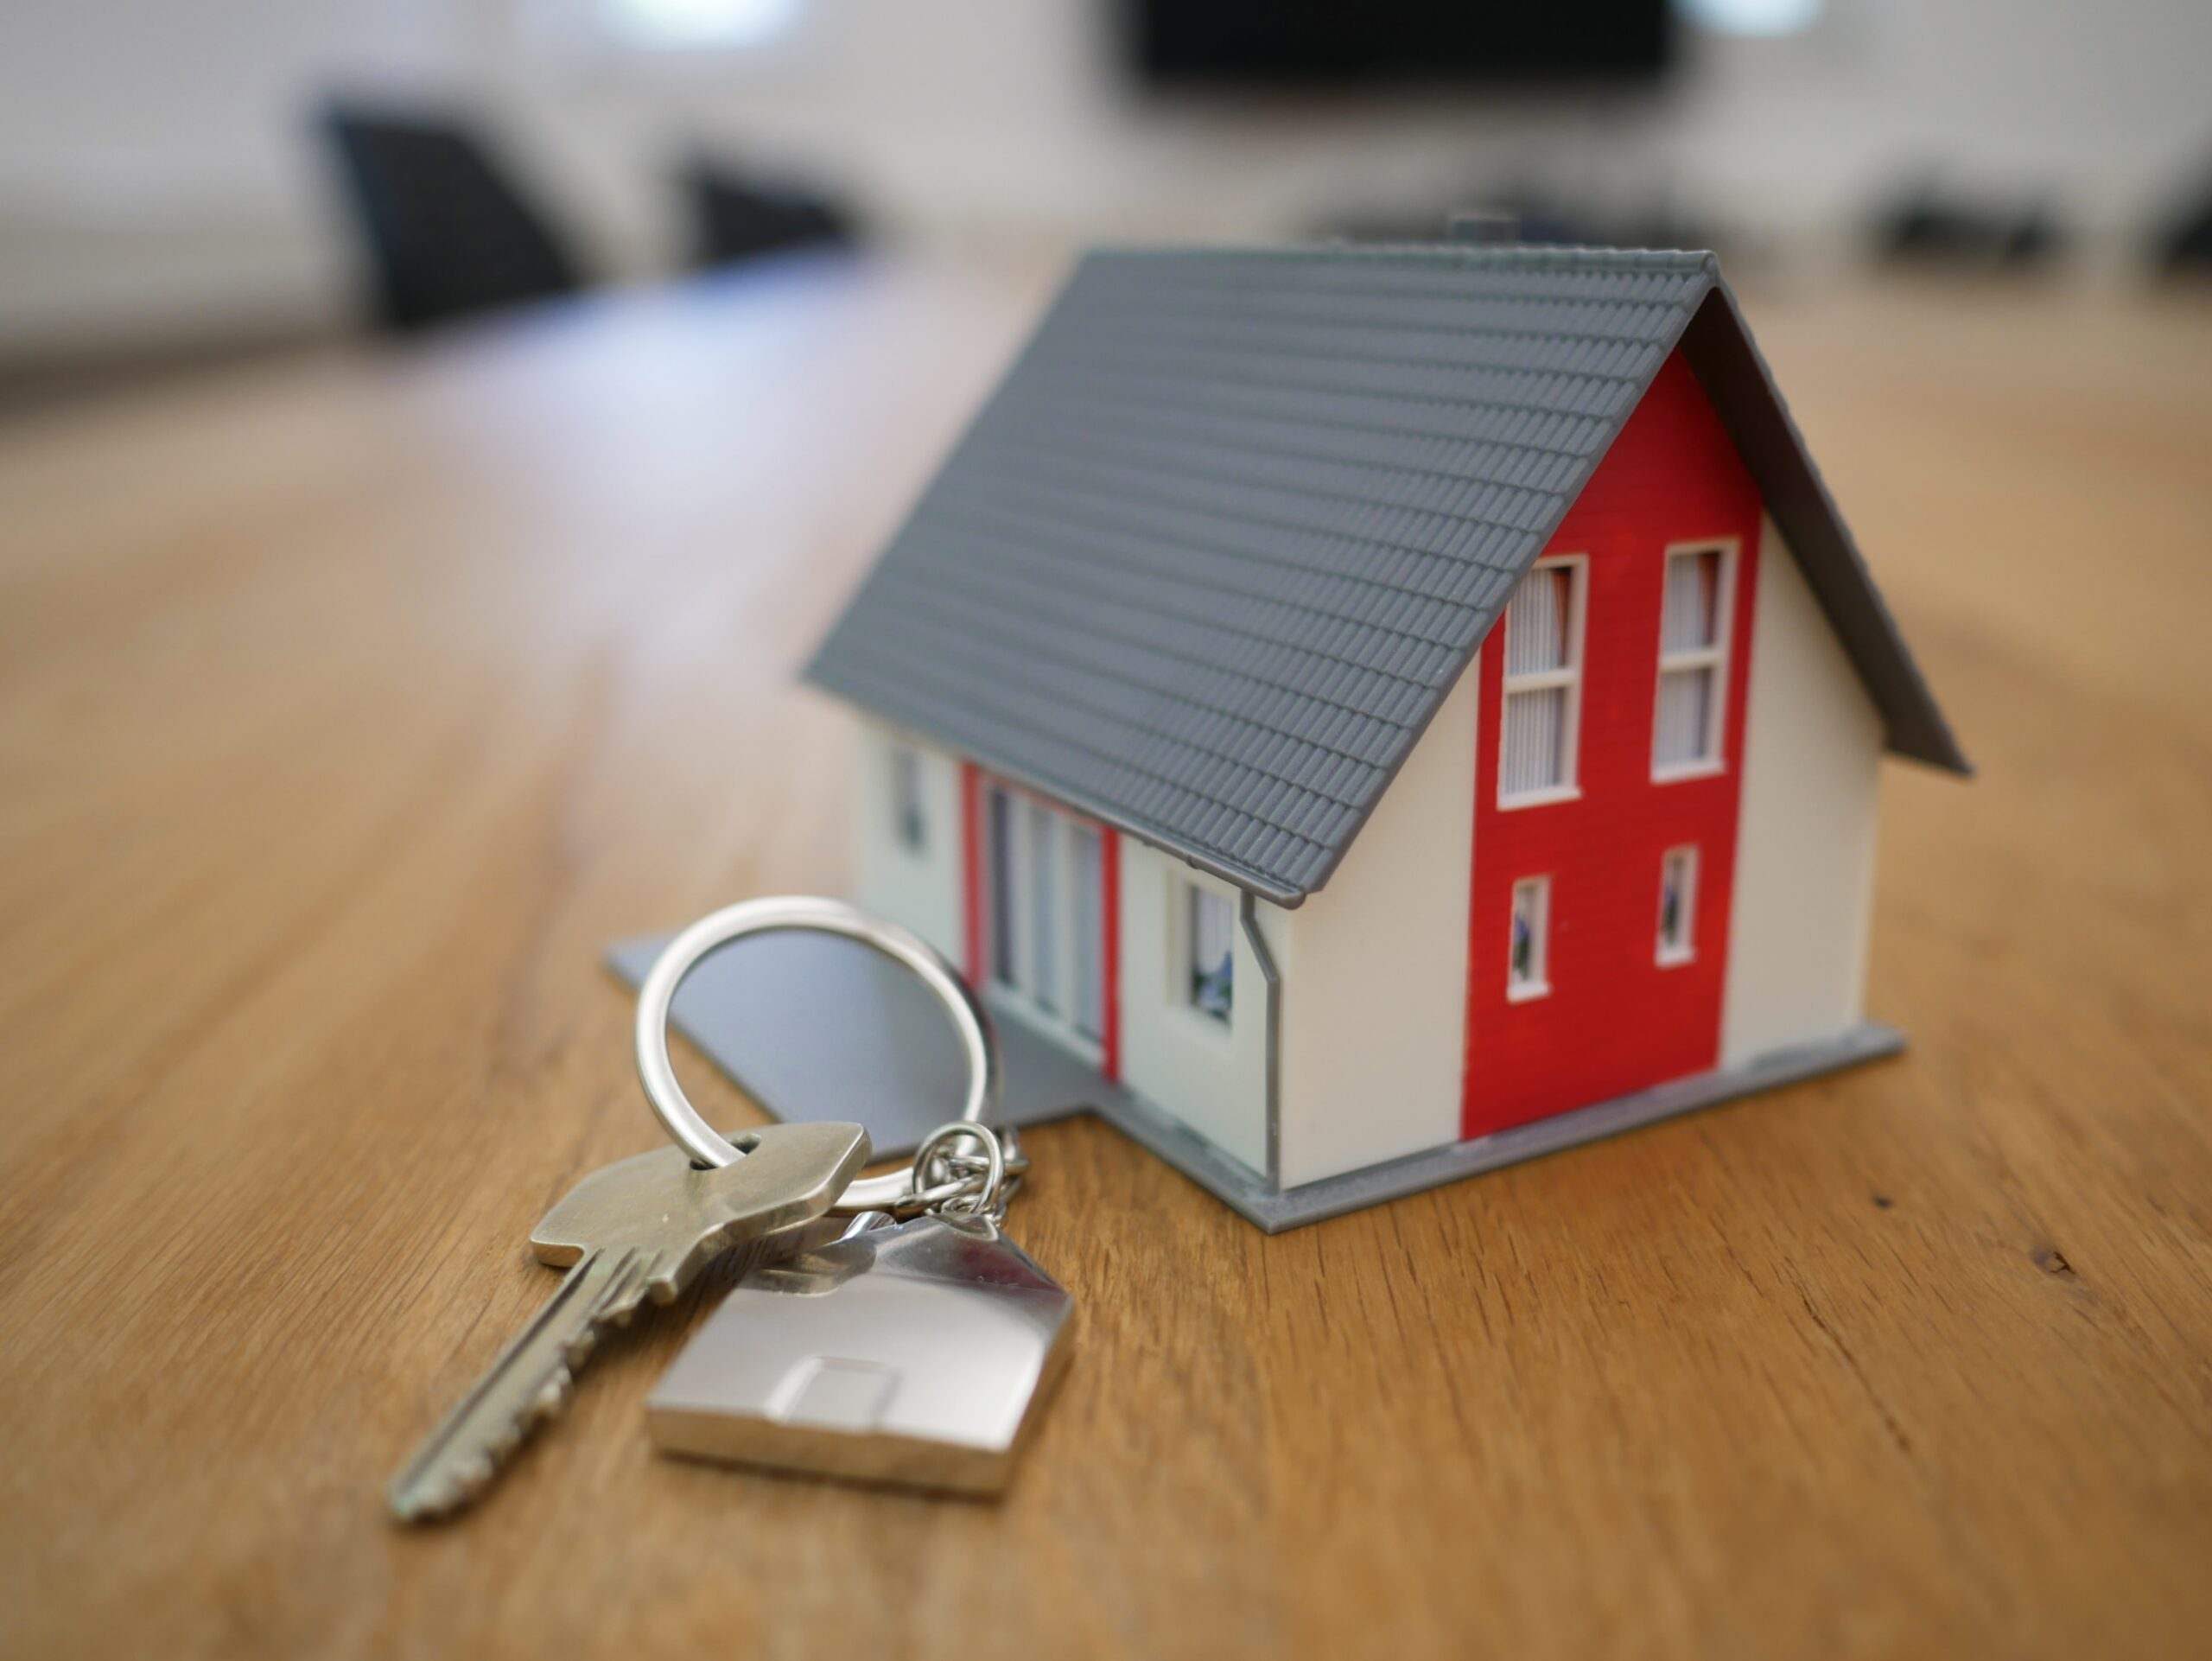 Set of Keys on a table with a model house attached